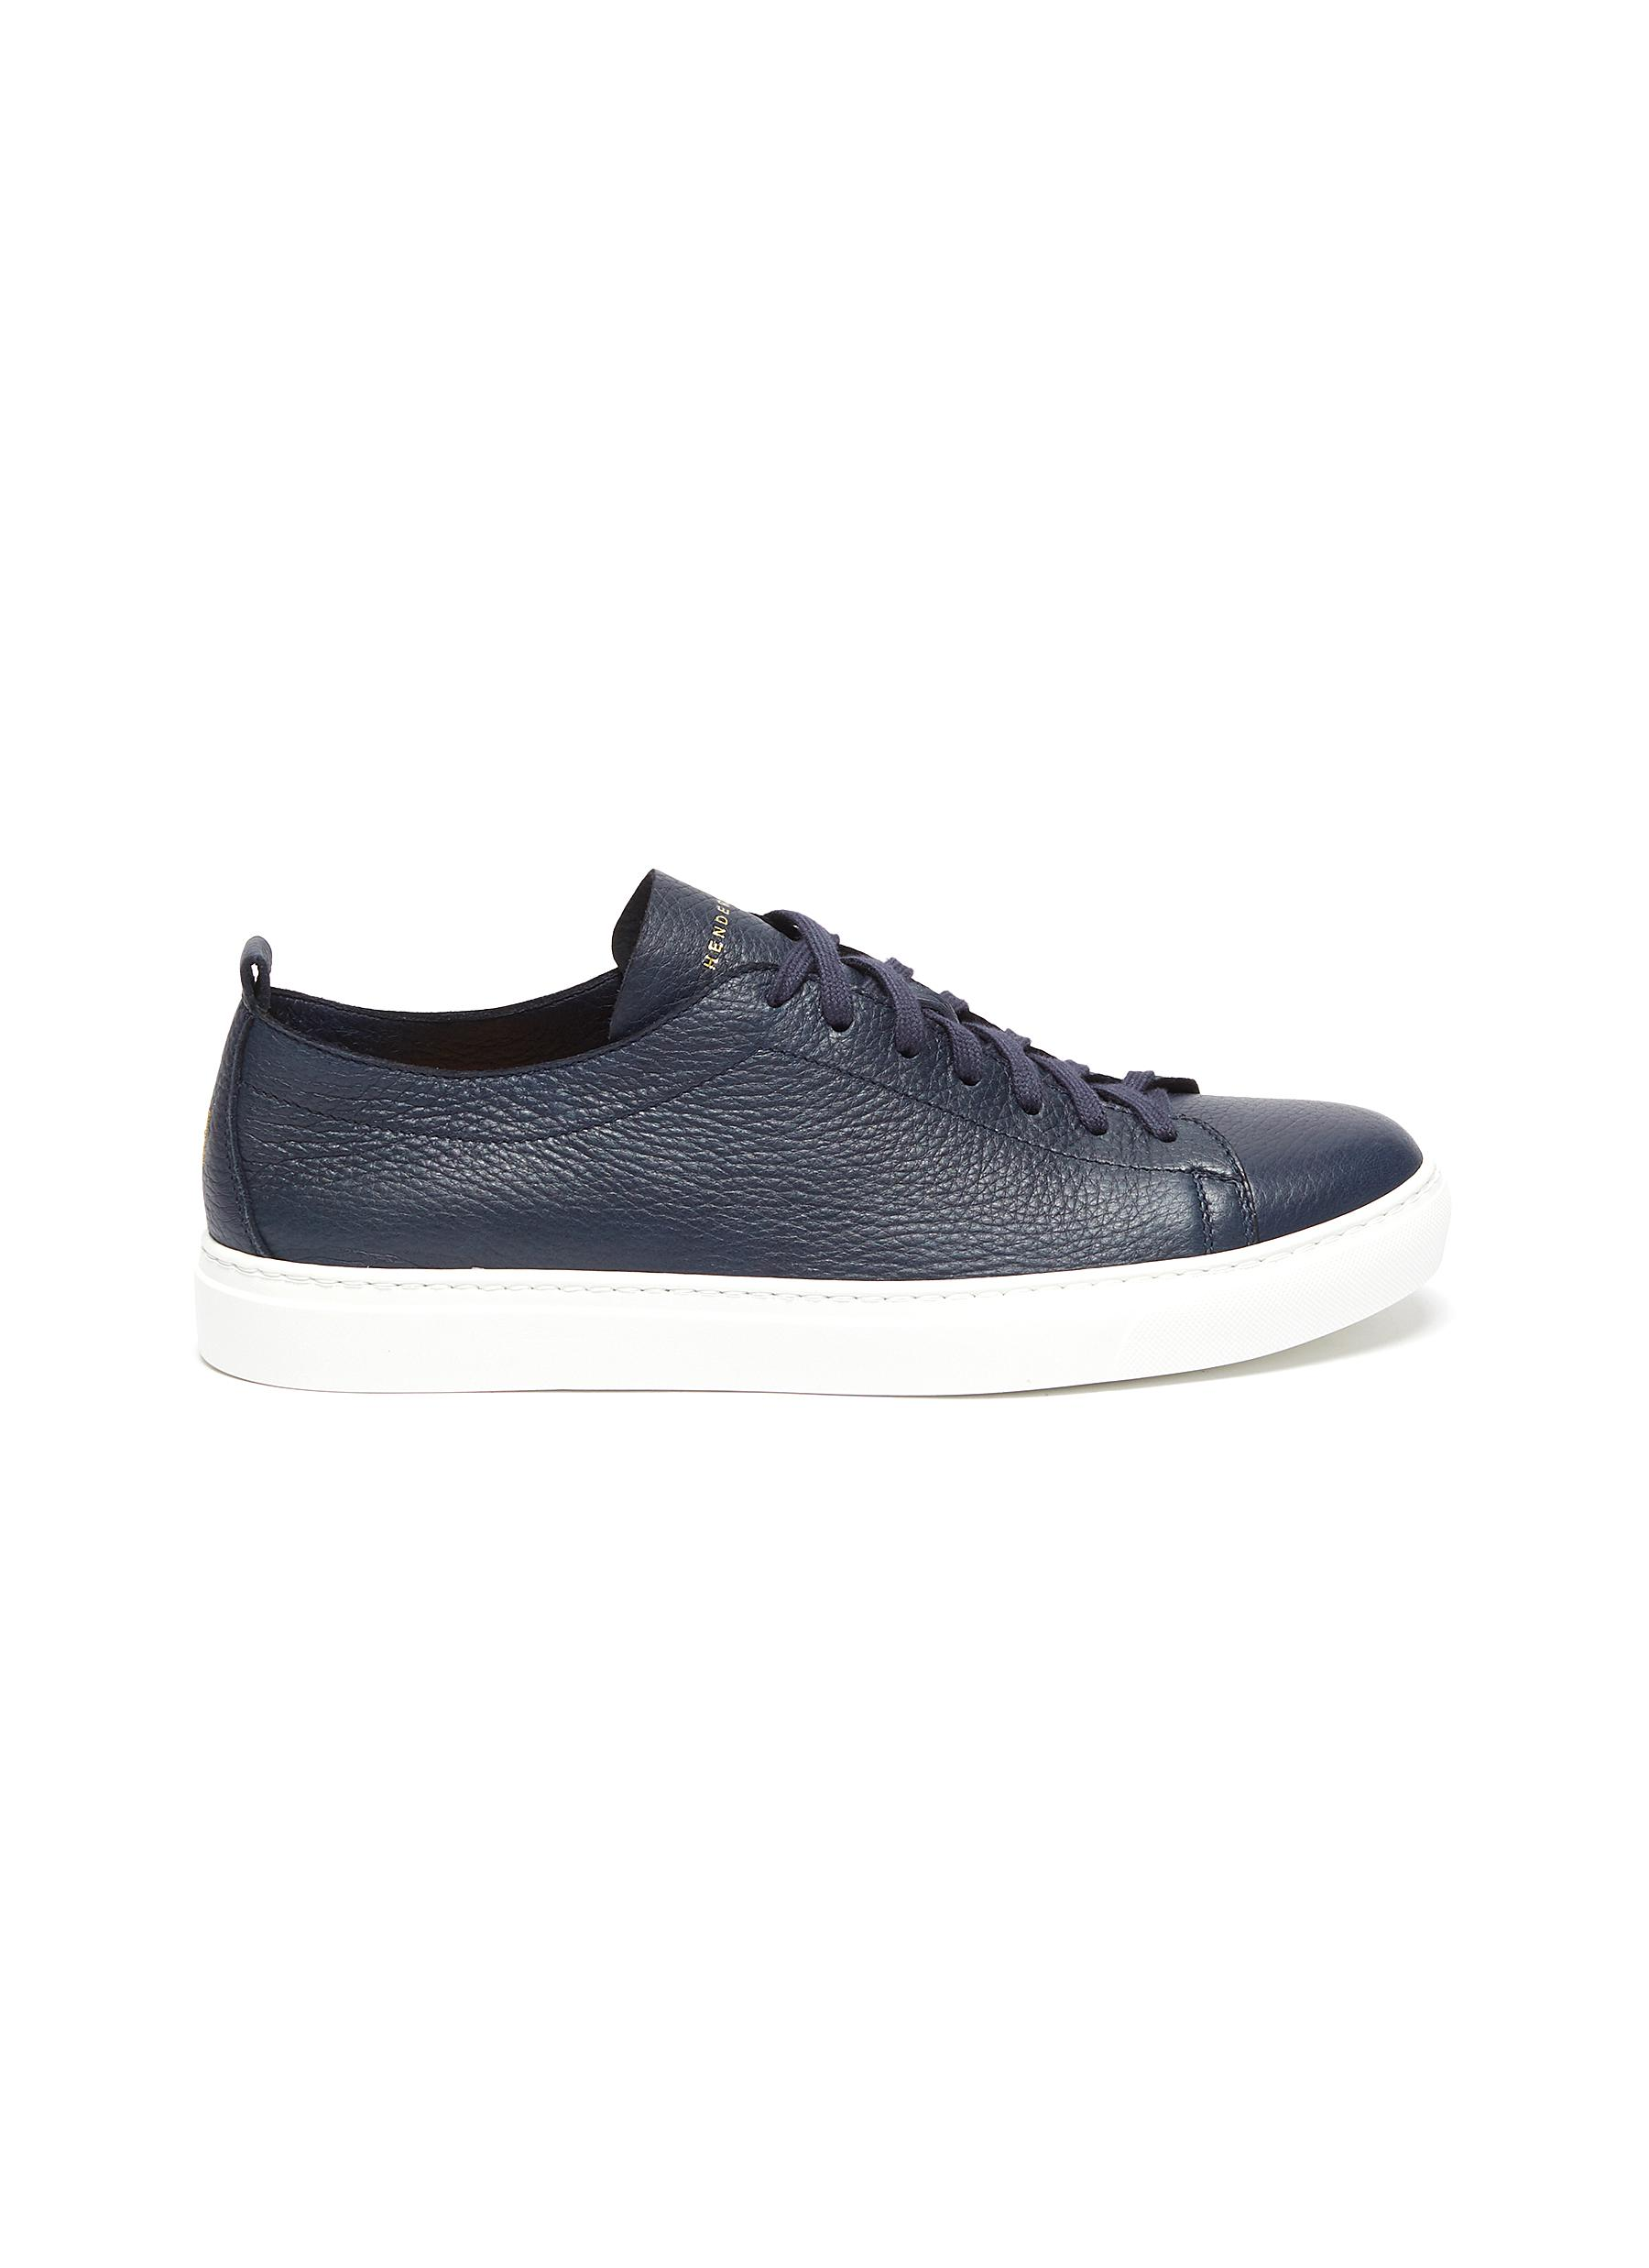 Bryan' grainy leather sneakers